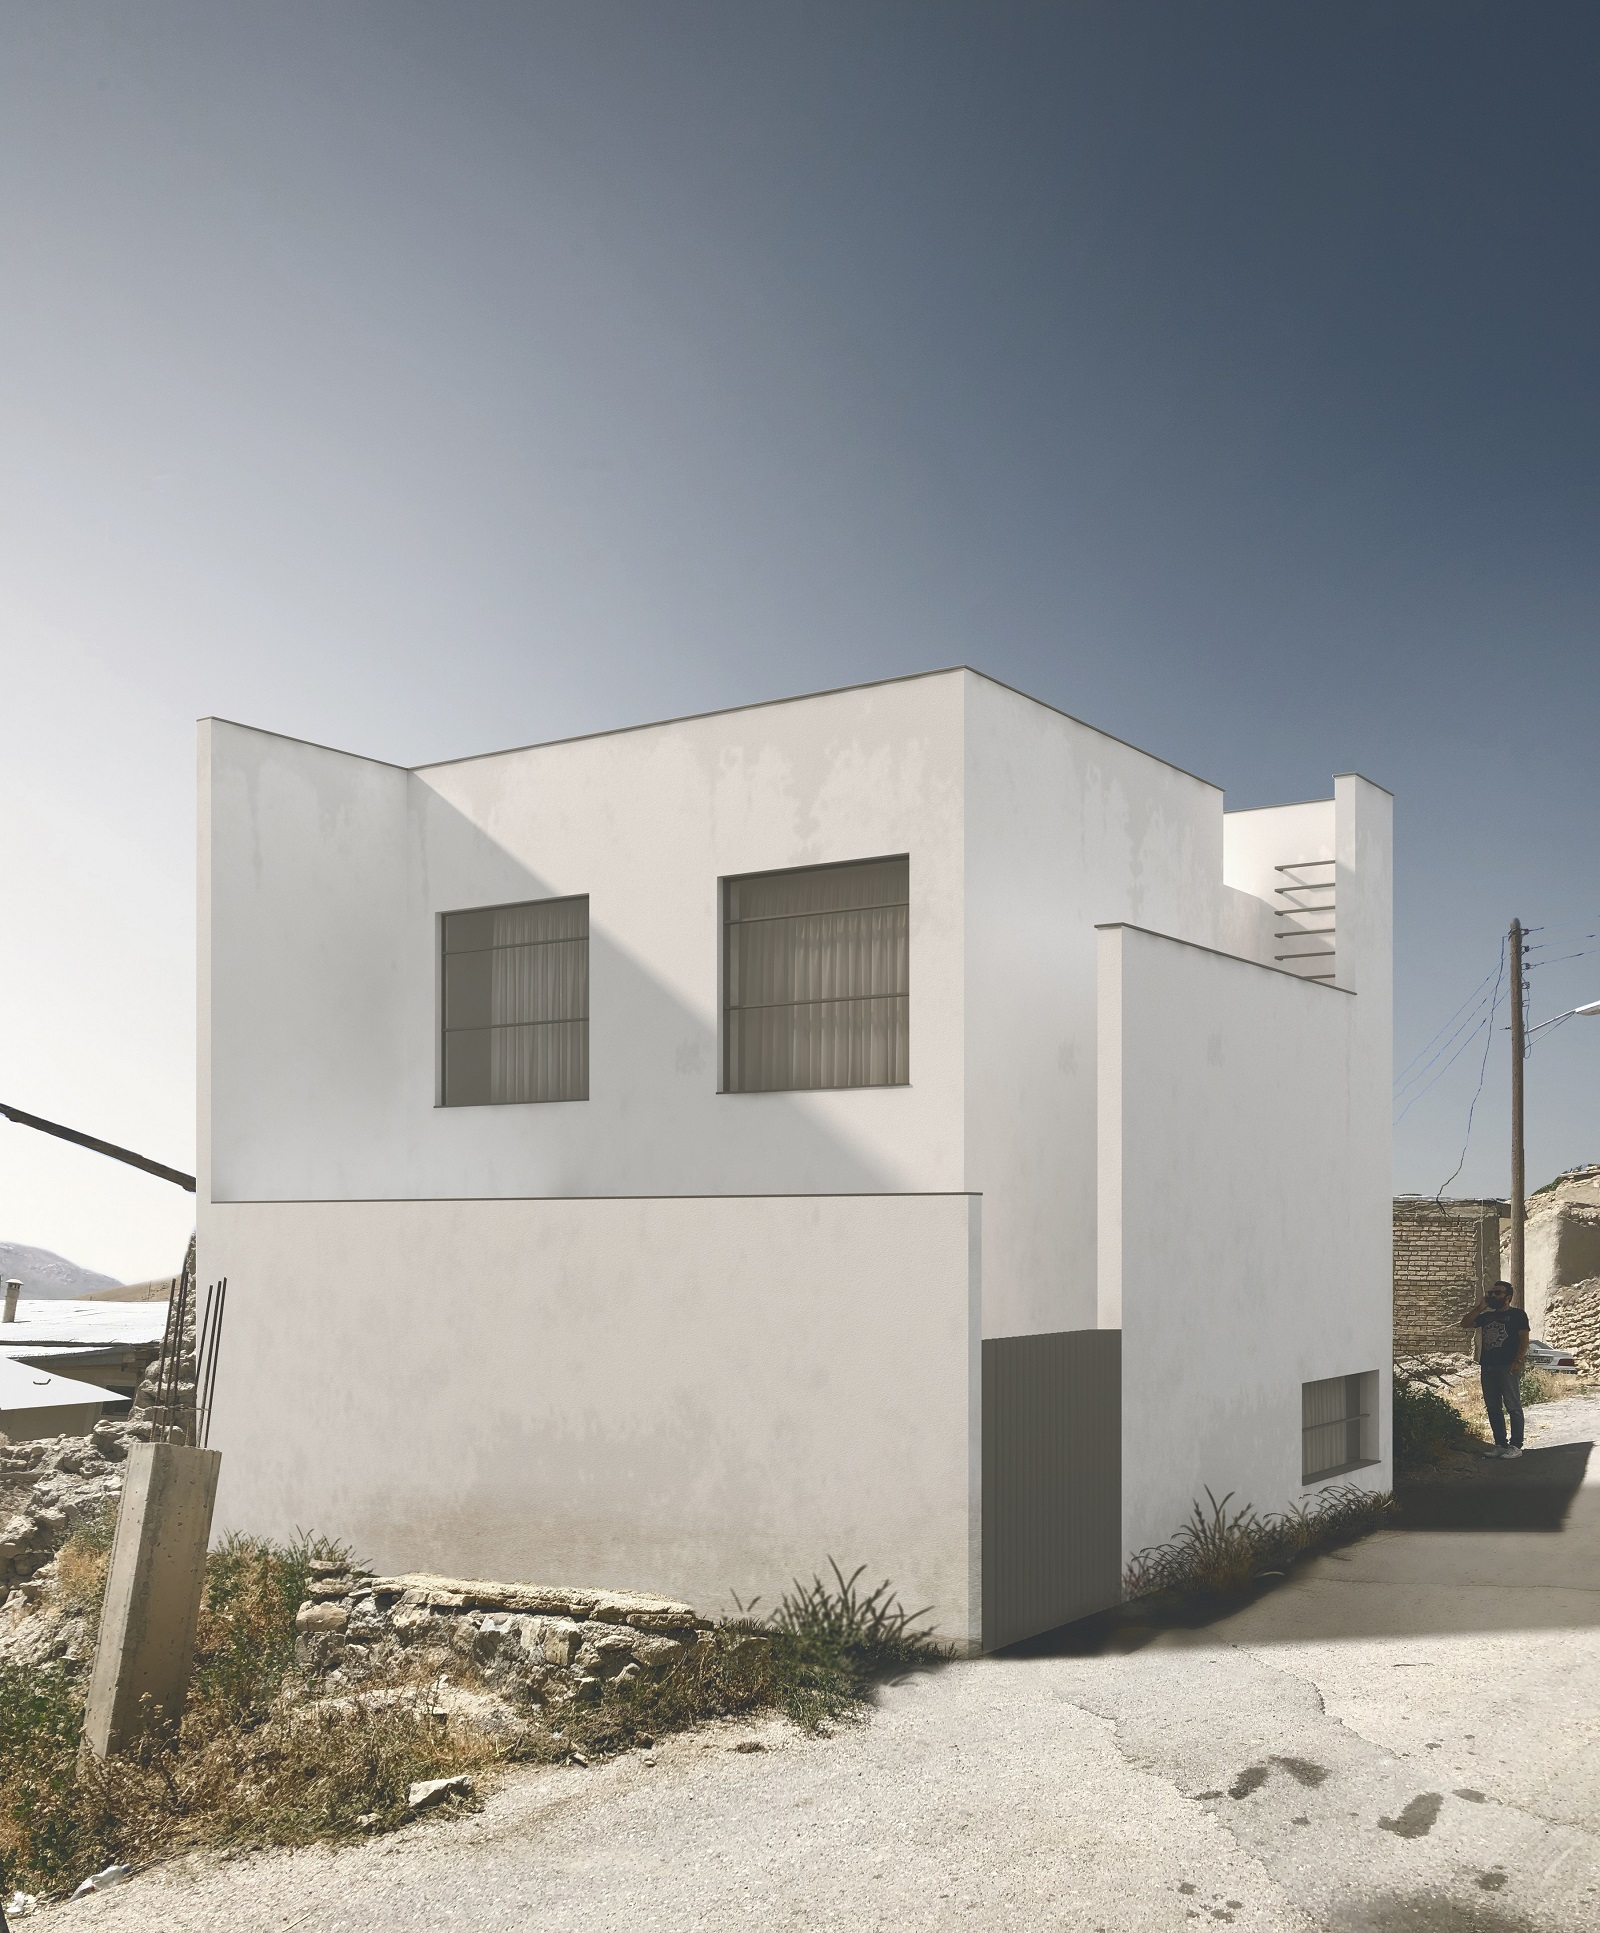 http://miragearchitects.ir/index.php/projects/paternal-house/